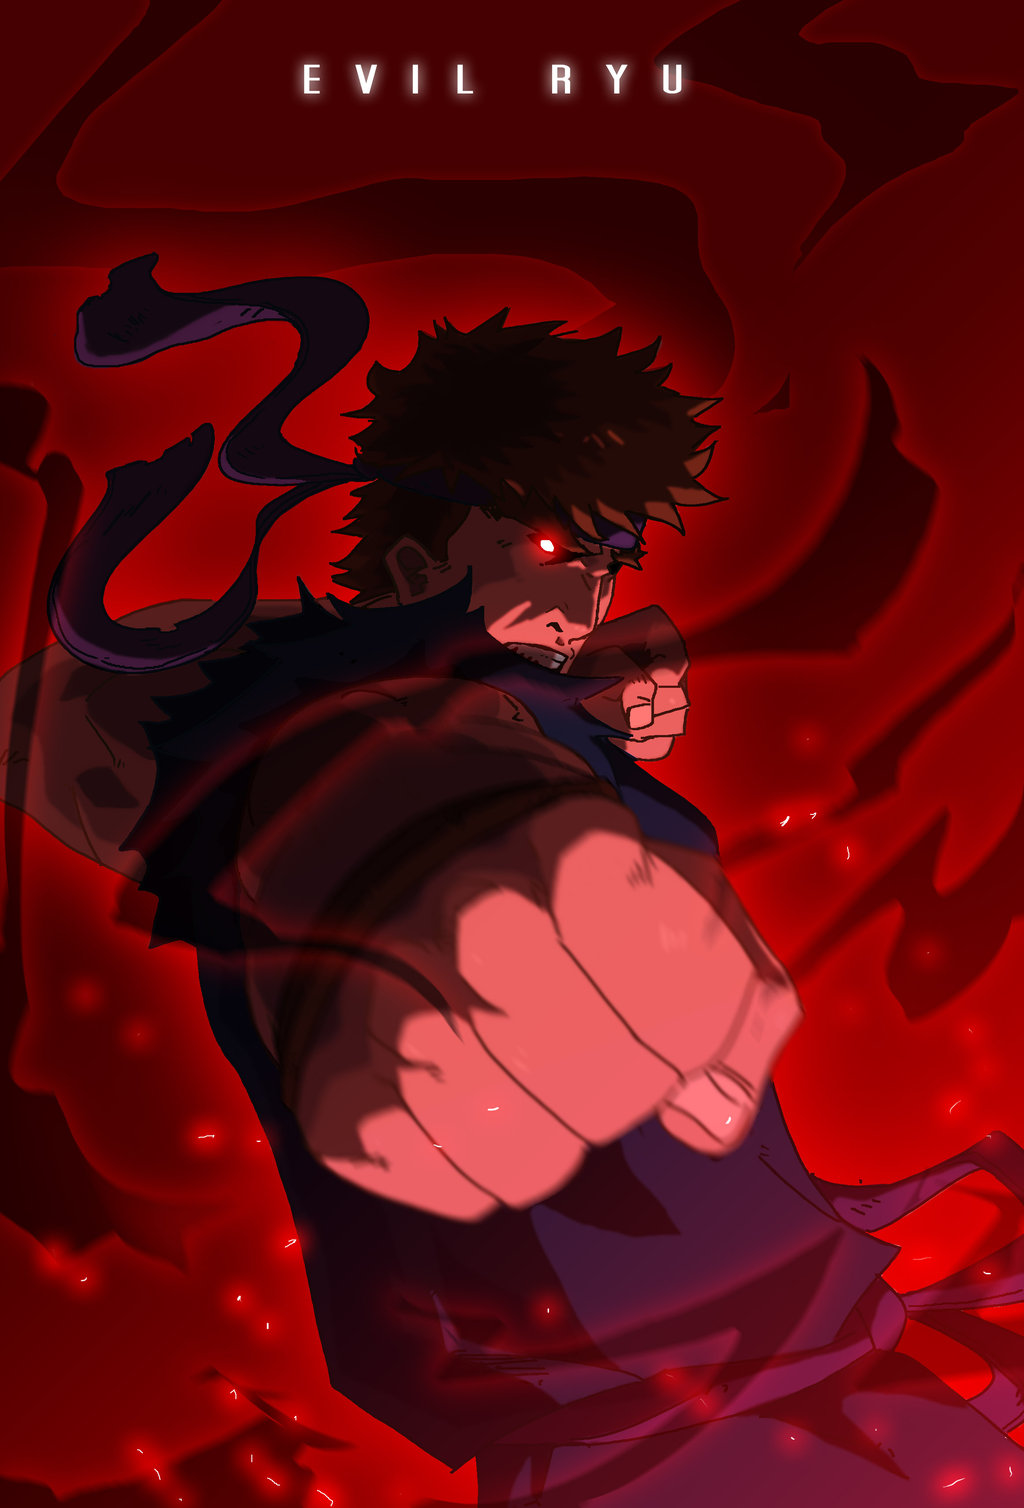 Free Download Evil Ryu By Immarart 1024x1508 For Your Desktop